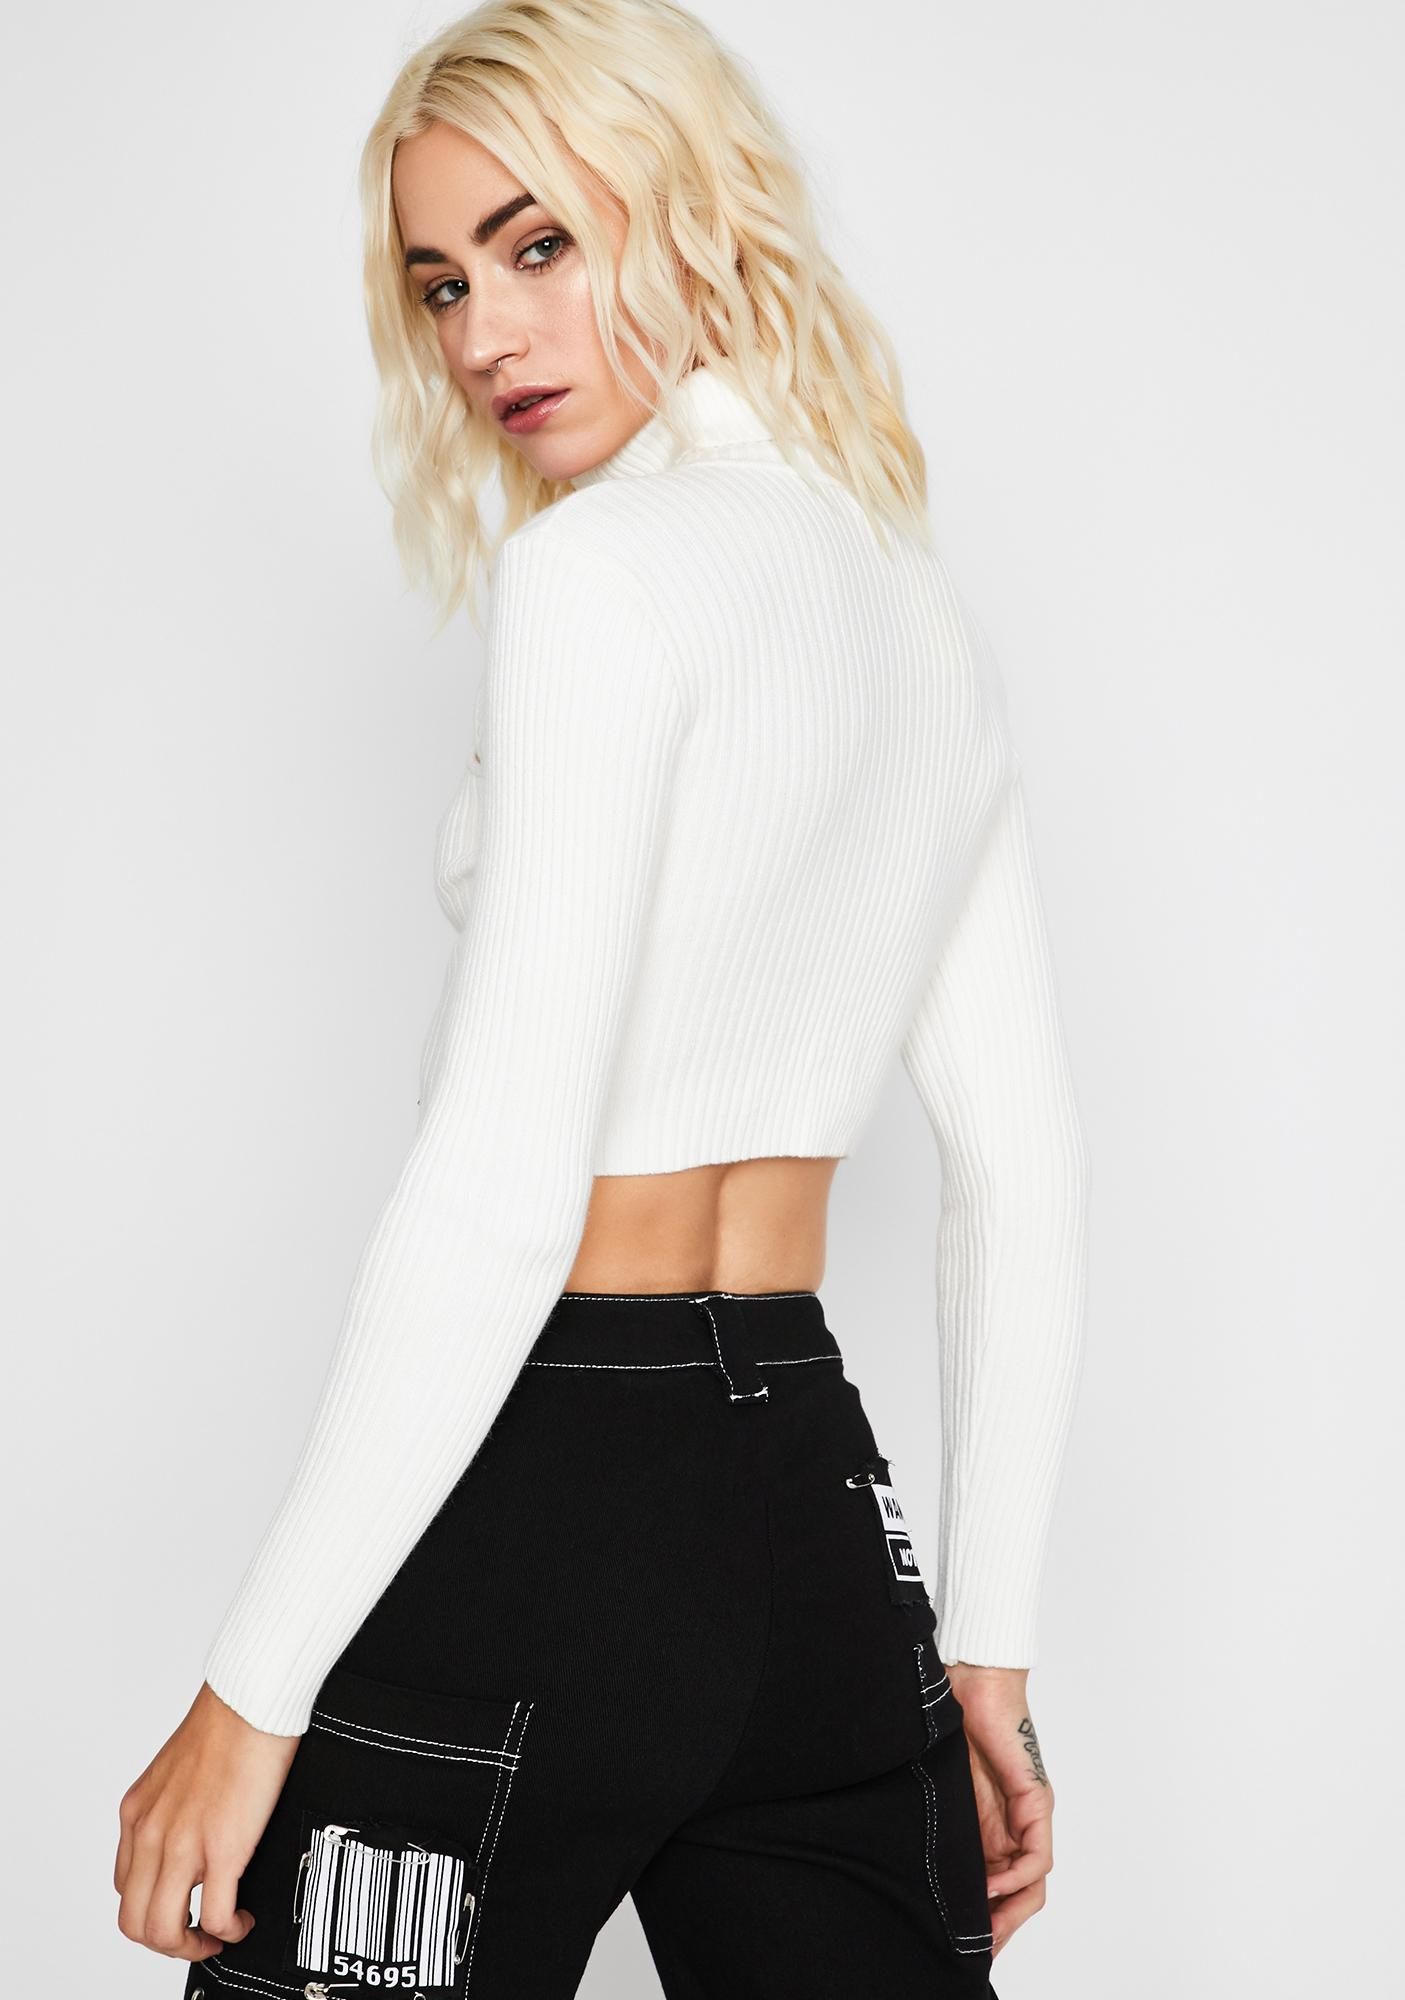 Icy Peep The Scene Cropped Sweater